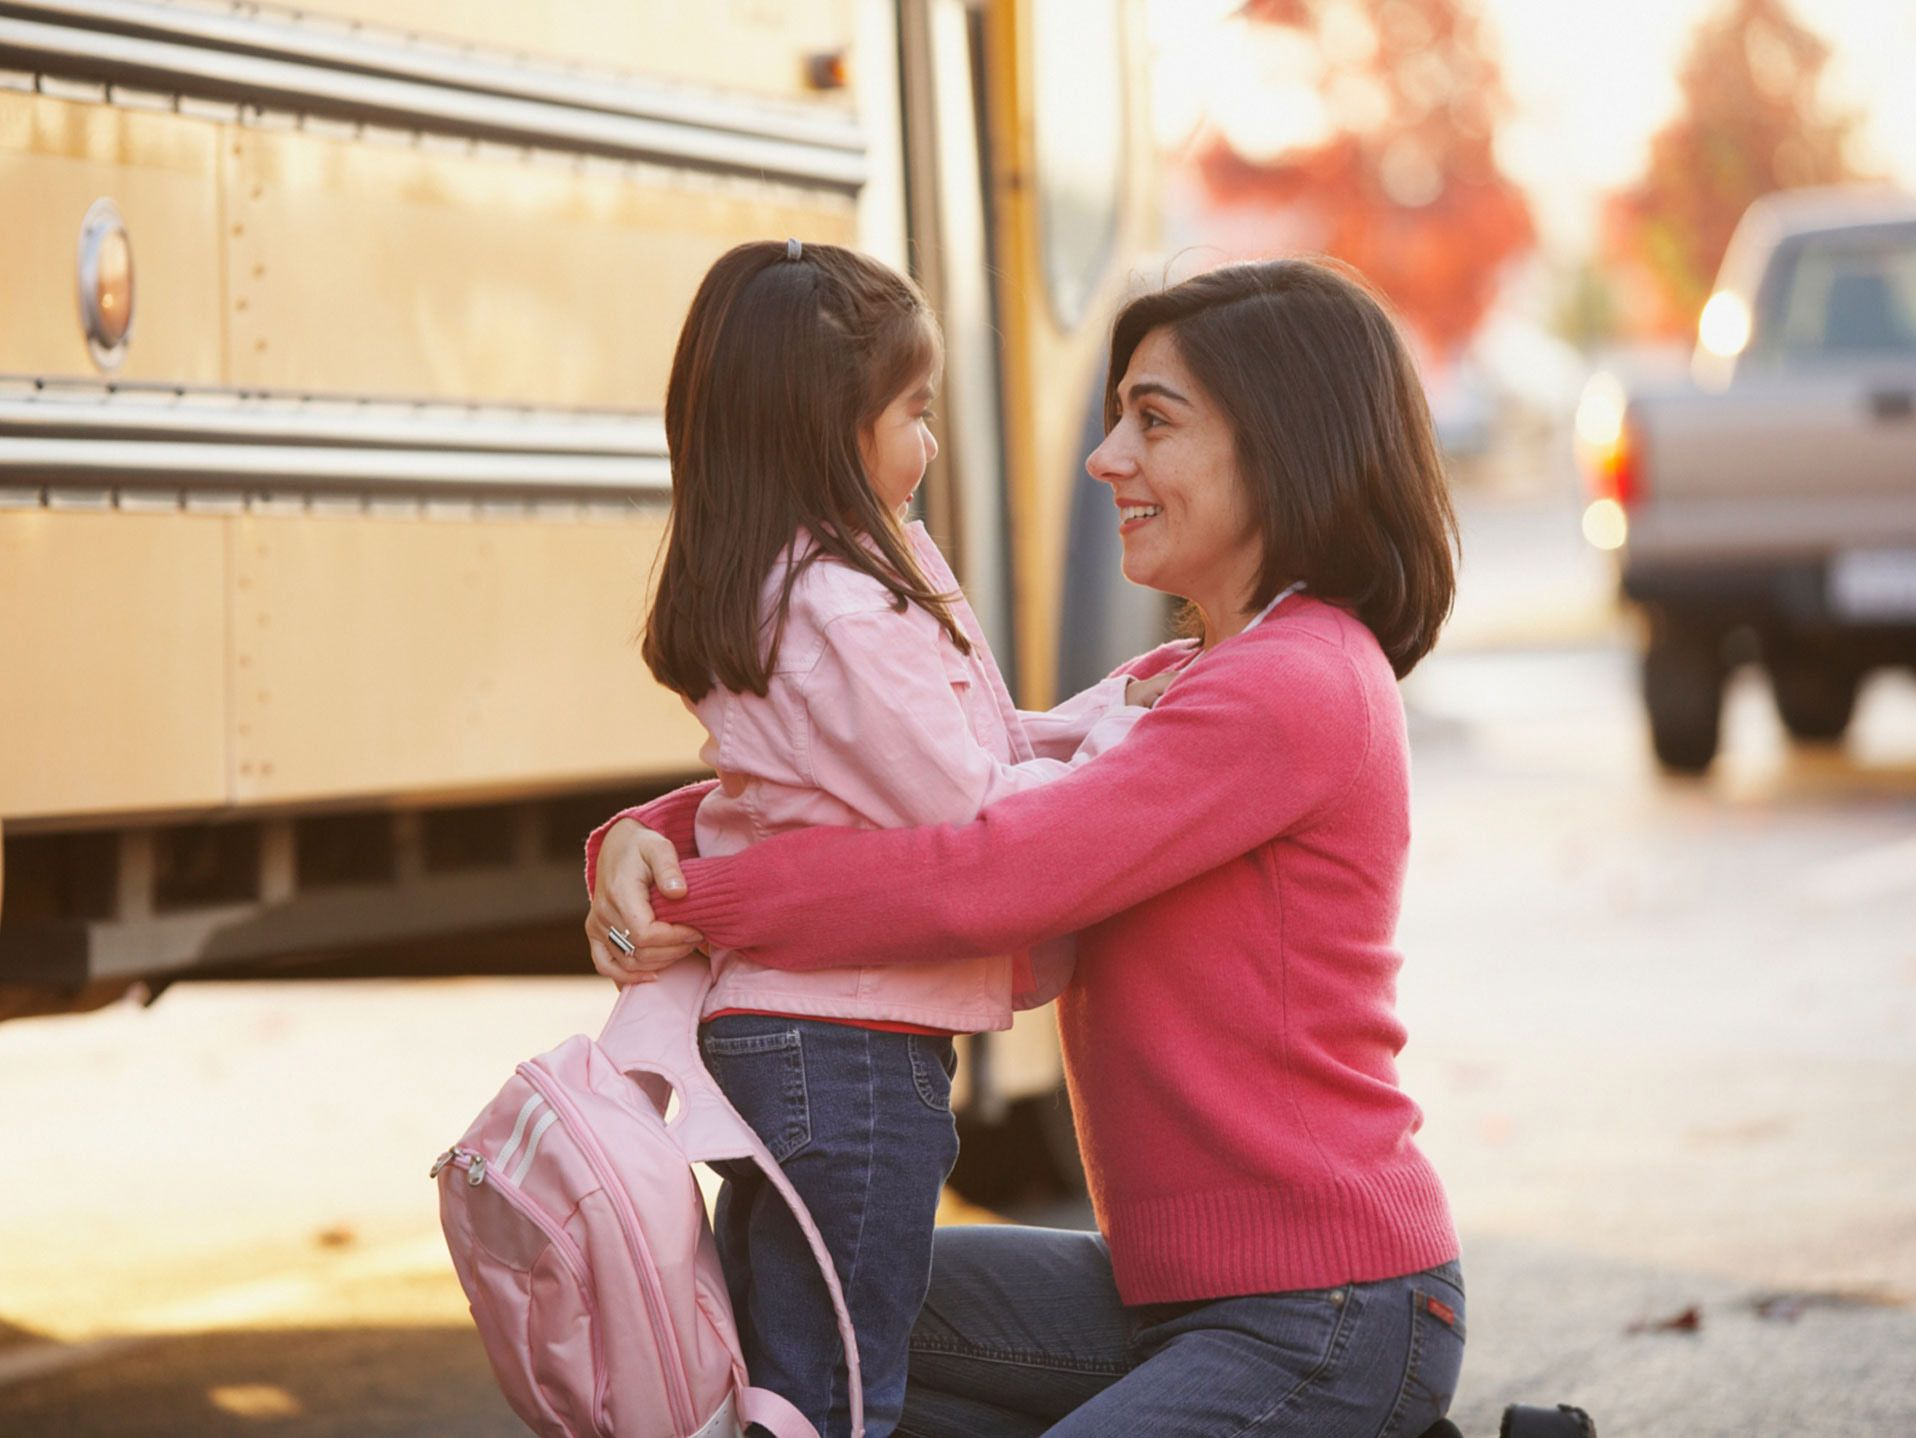 A photo of a parent and child in front of a school bus.